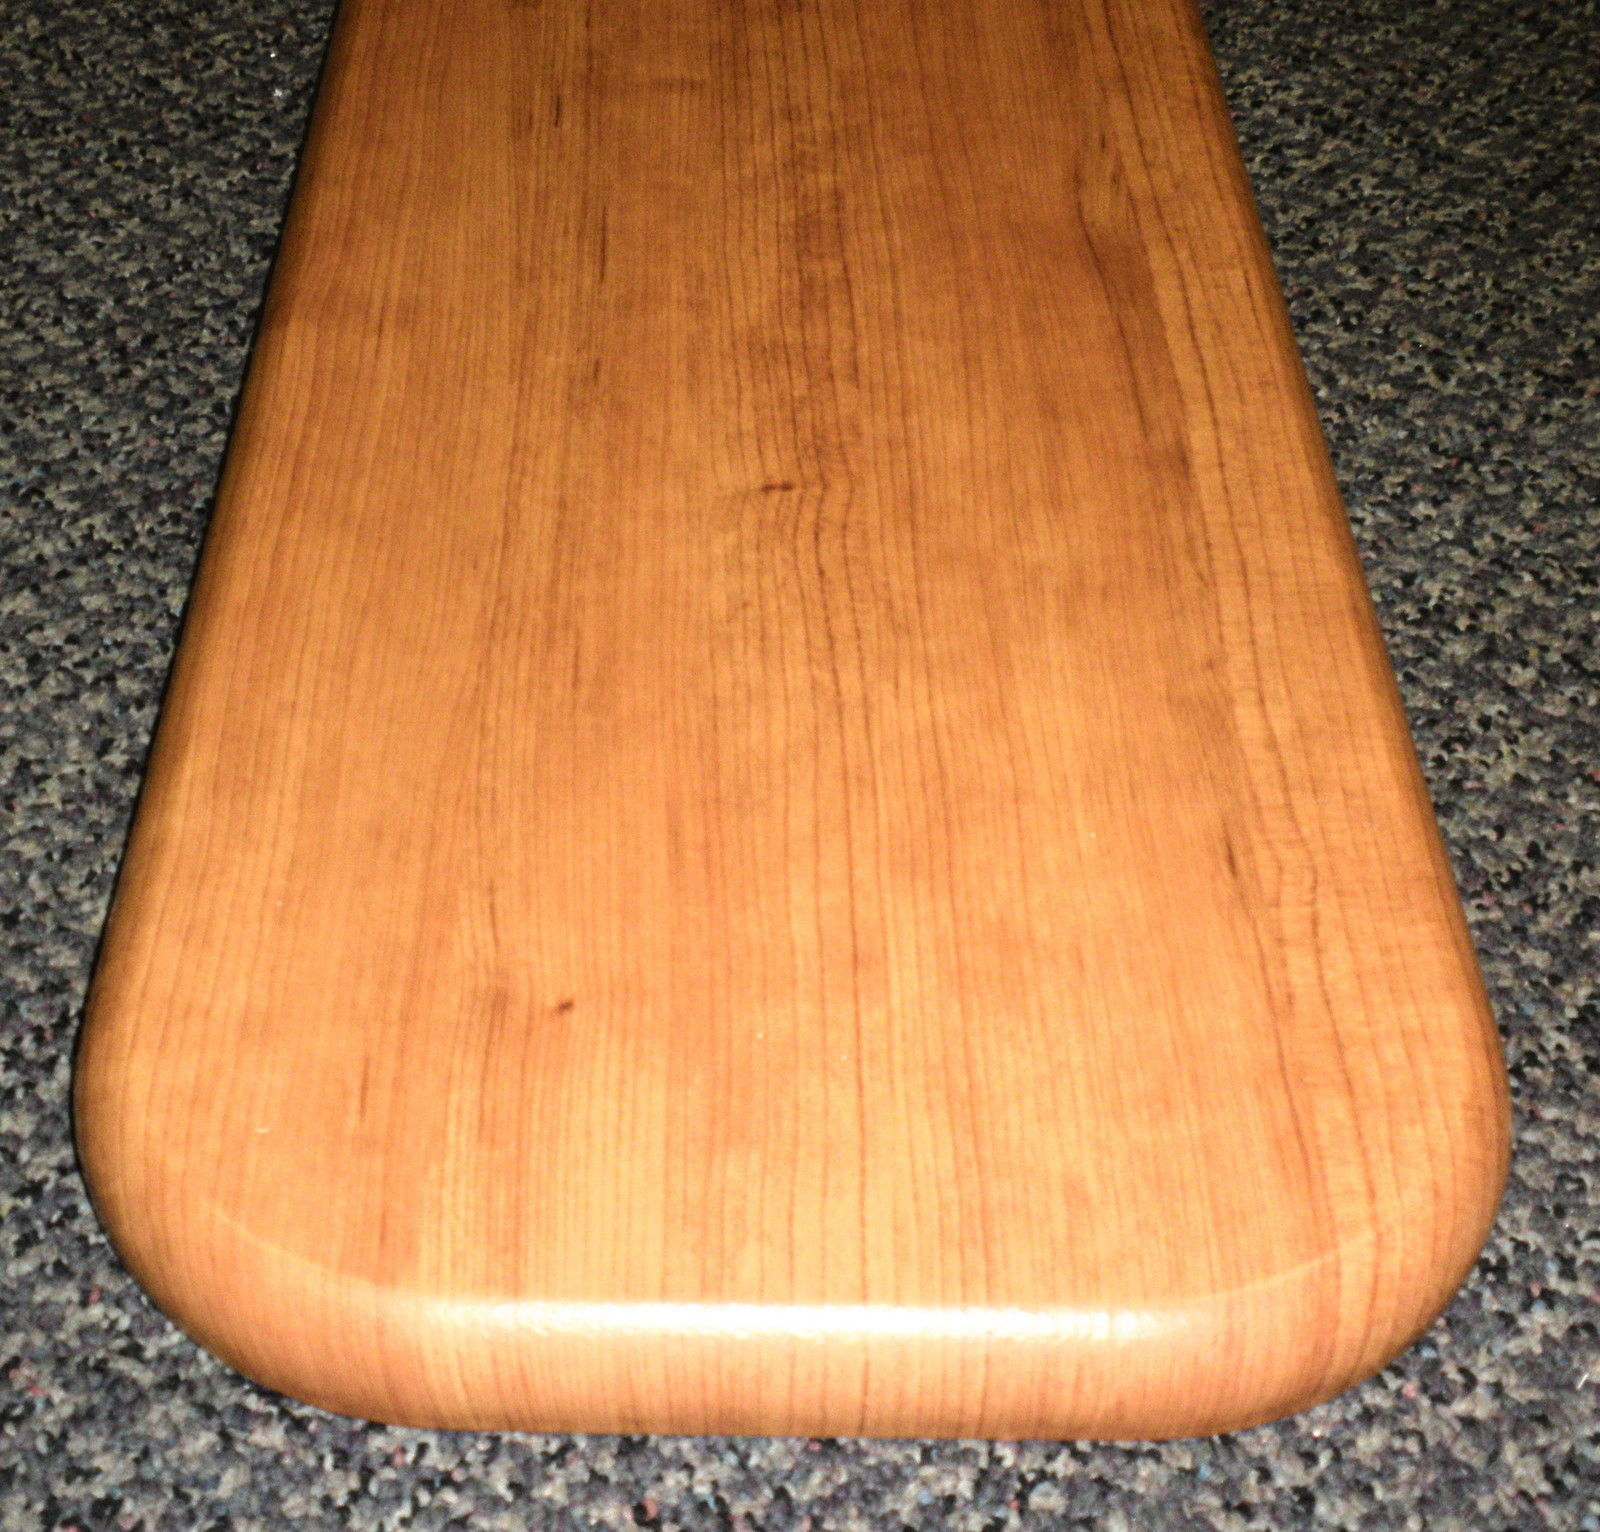 "Robert Weed Rustik Cherry MDF Table Top Size: 9"" X 42"" X 3/4""  #VF96"